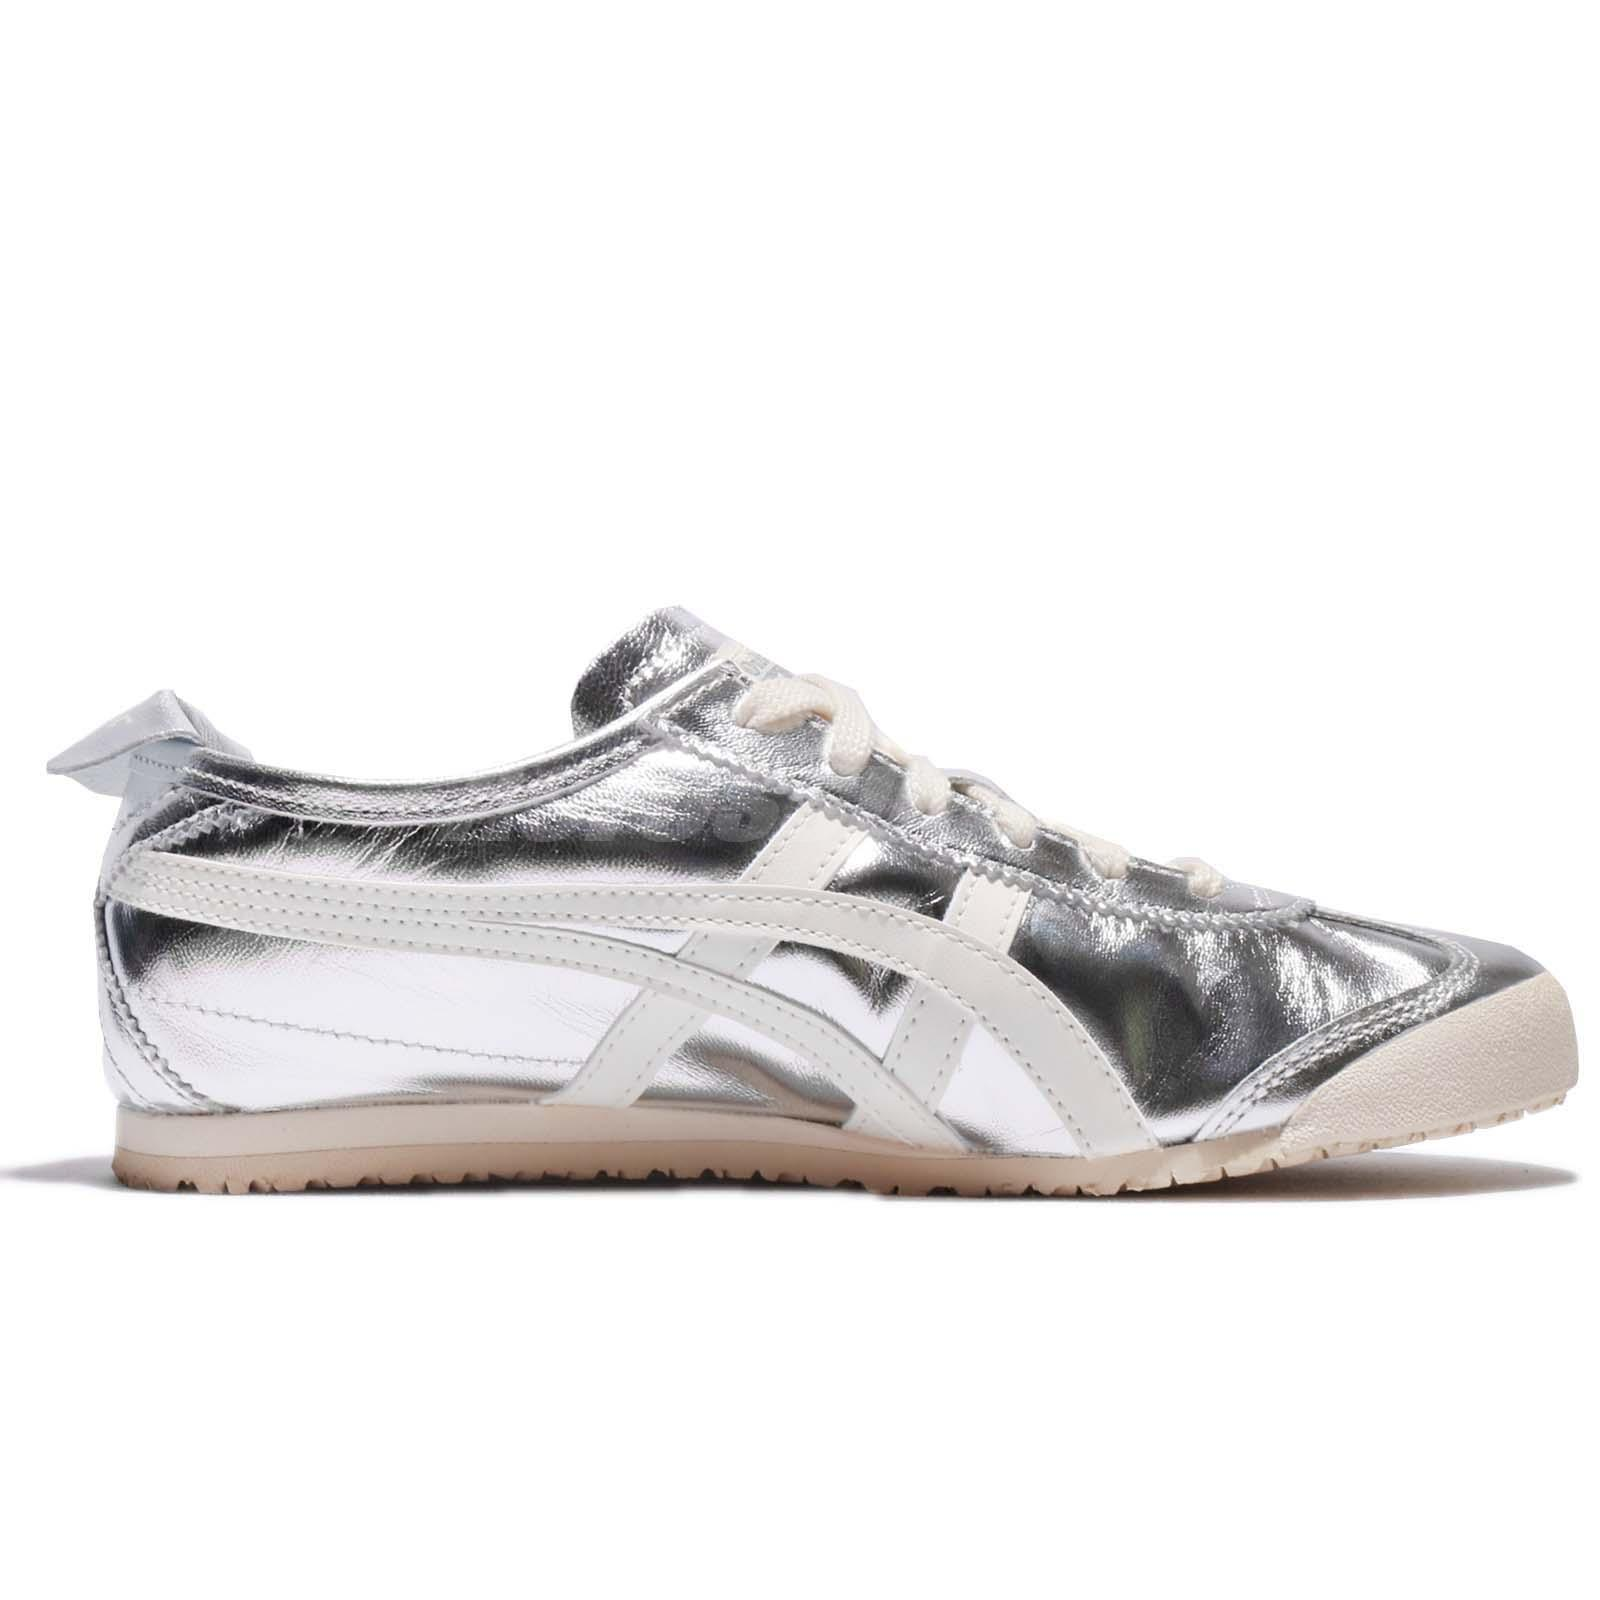 best service ad401 fe59c Details about Asics Onitsuka Tiger Mexico 66 Patent Leather Silver Off  White Men THL7C2-9399